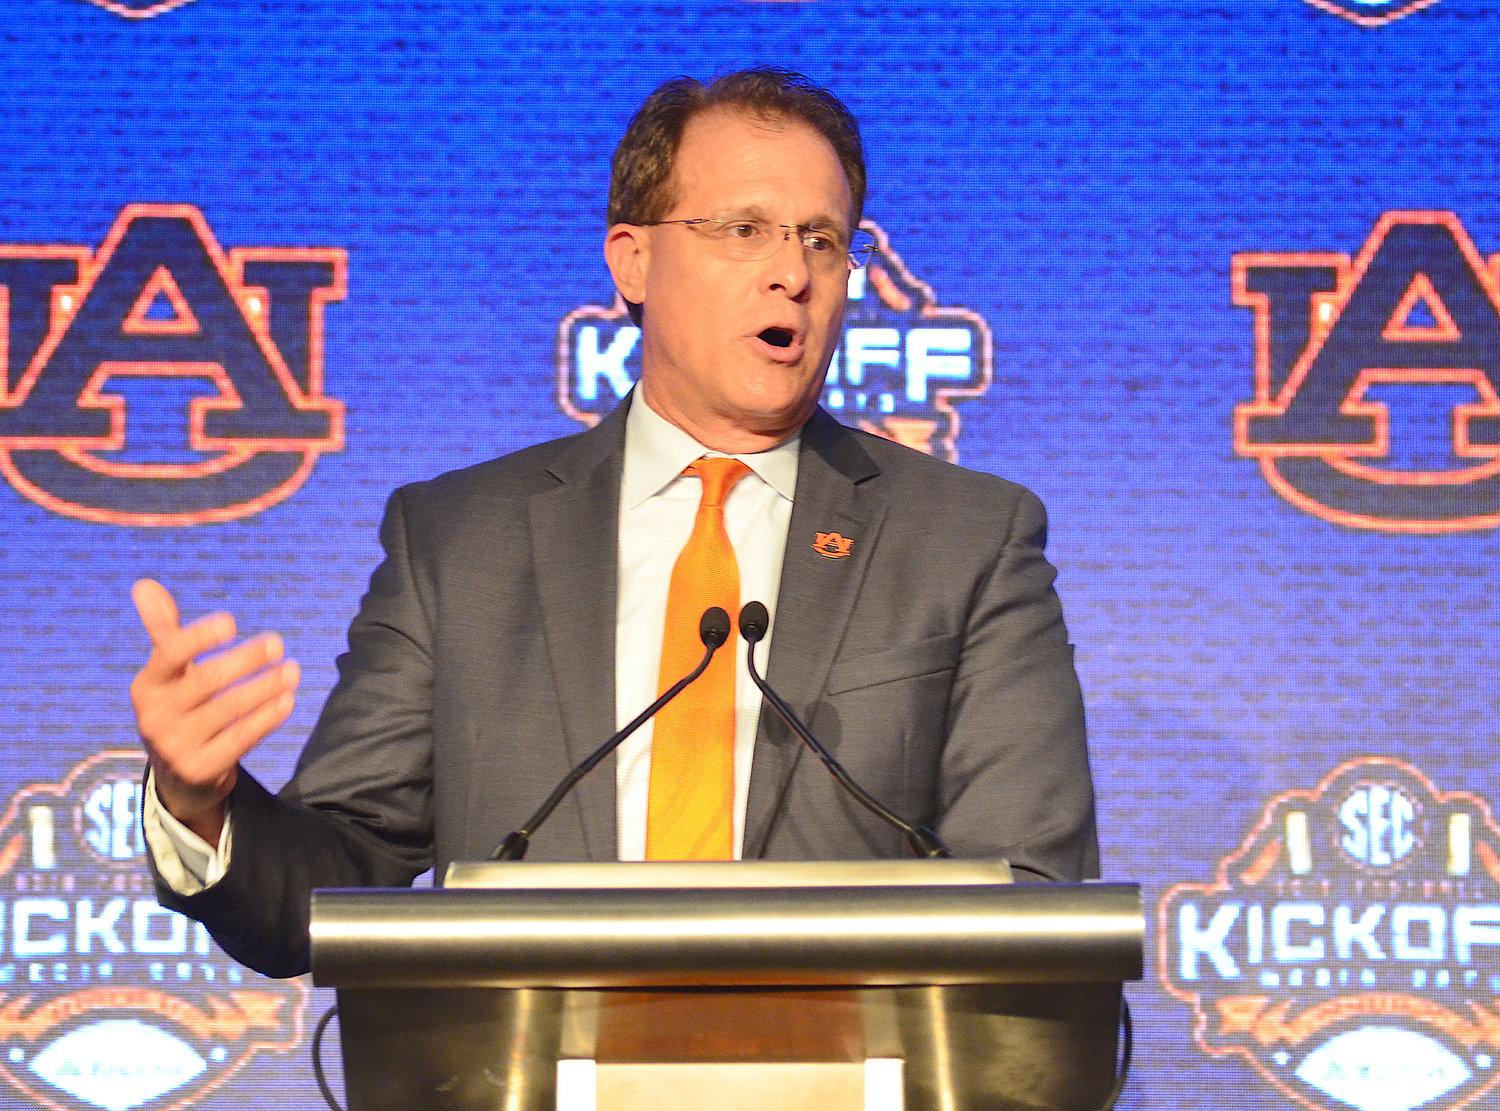 Auburn head football coach Gus Malzahn speaks to reporters at SEC Media Days in Hoover on Thursday. Malzahn enters the season on the hot seat following an 8-5 season in 2018. The Tigers open the 2019 season in Arlington, Texas against Oregon.